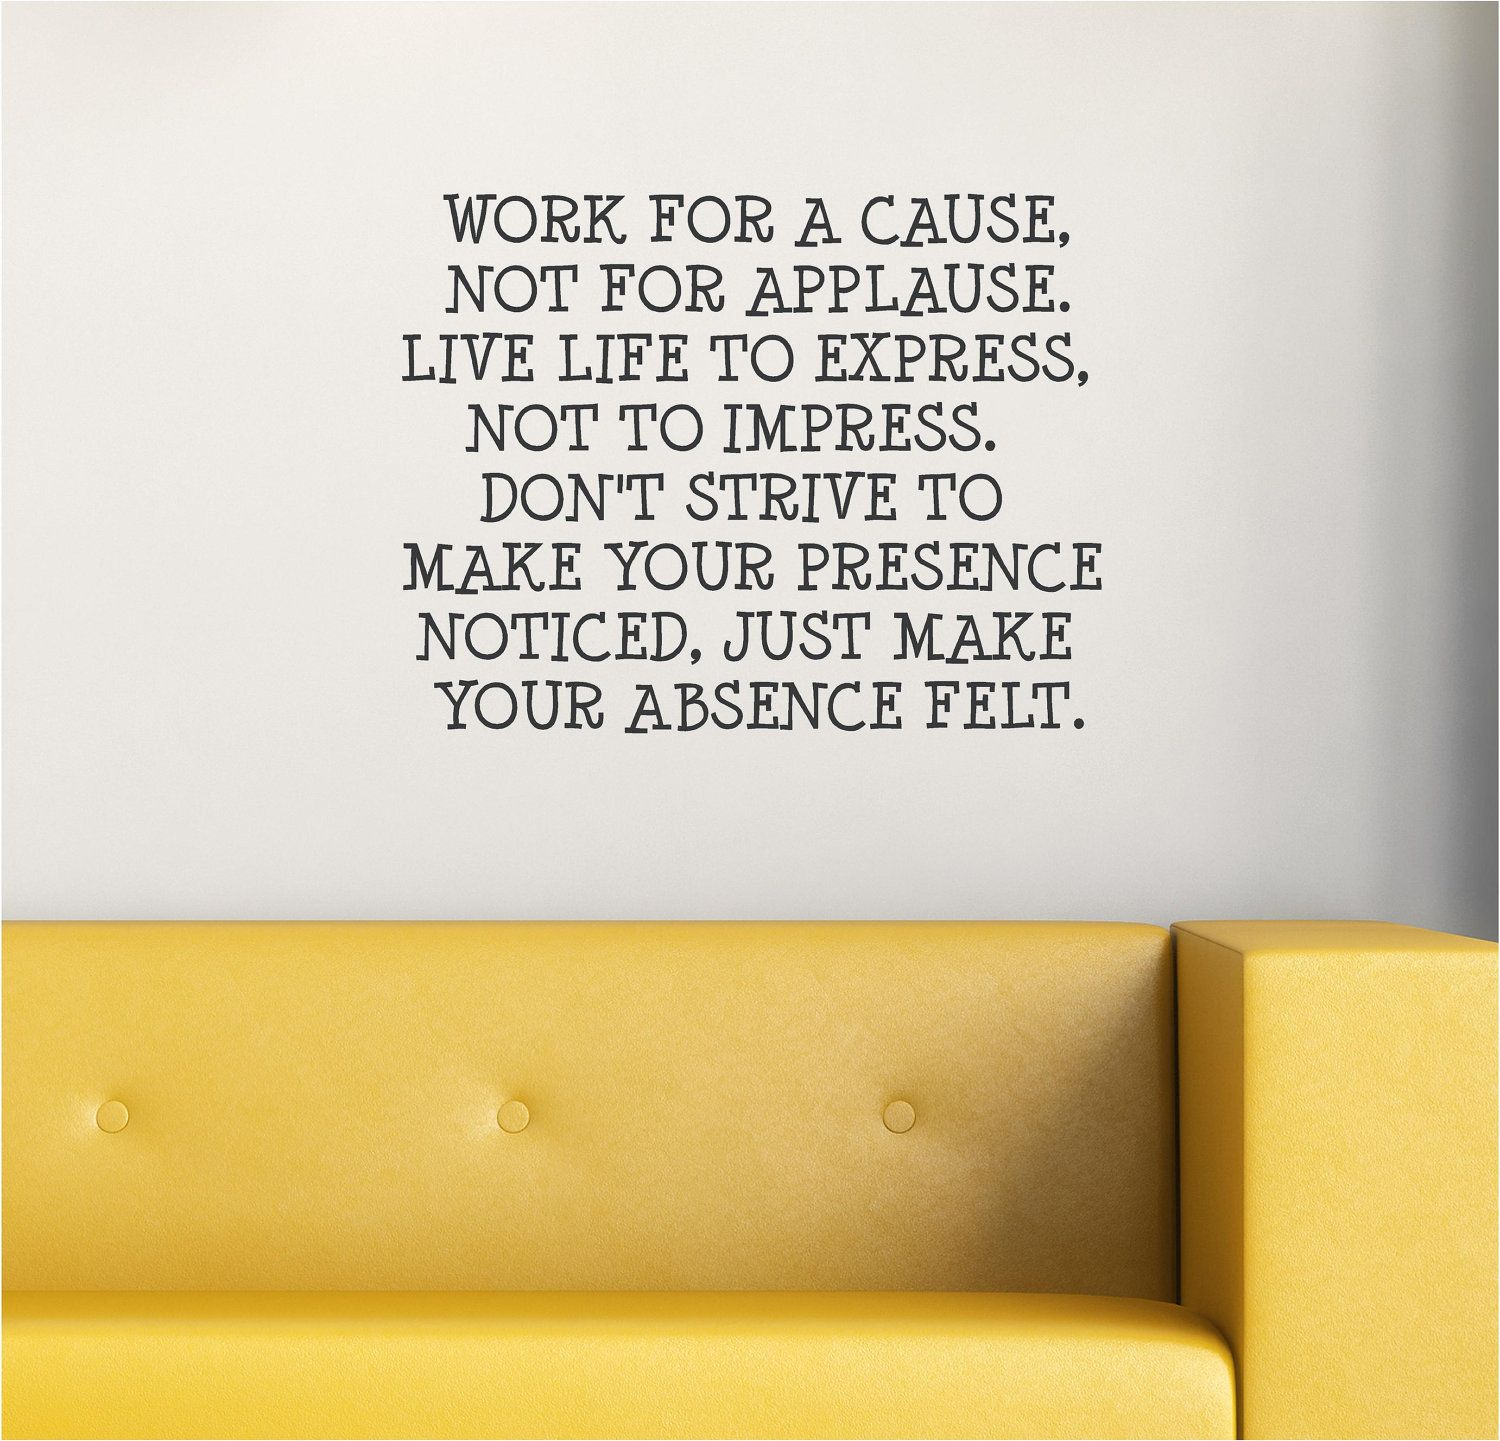 Work for a cause, not for applause. | Thoughts | Pinterest | Thoughts